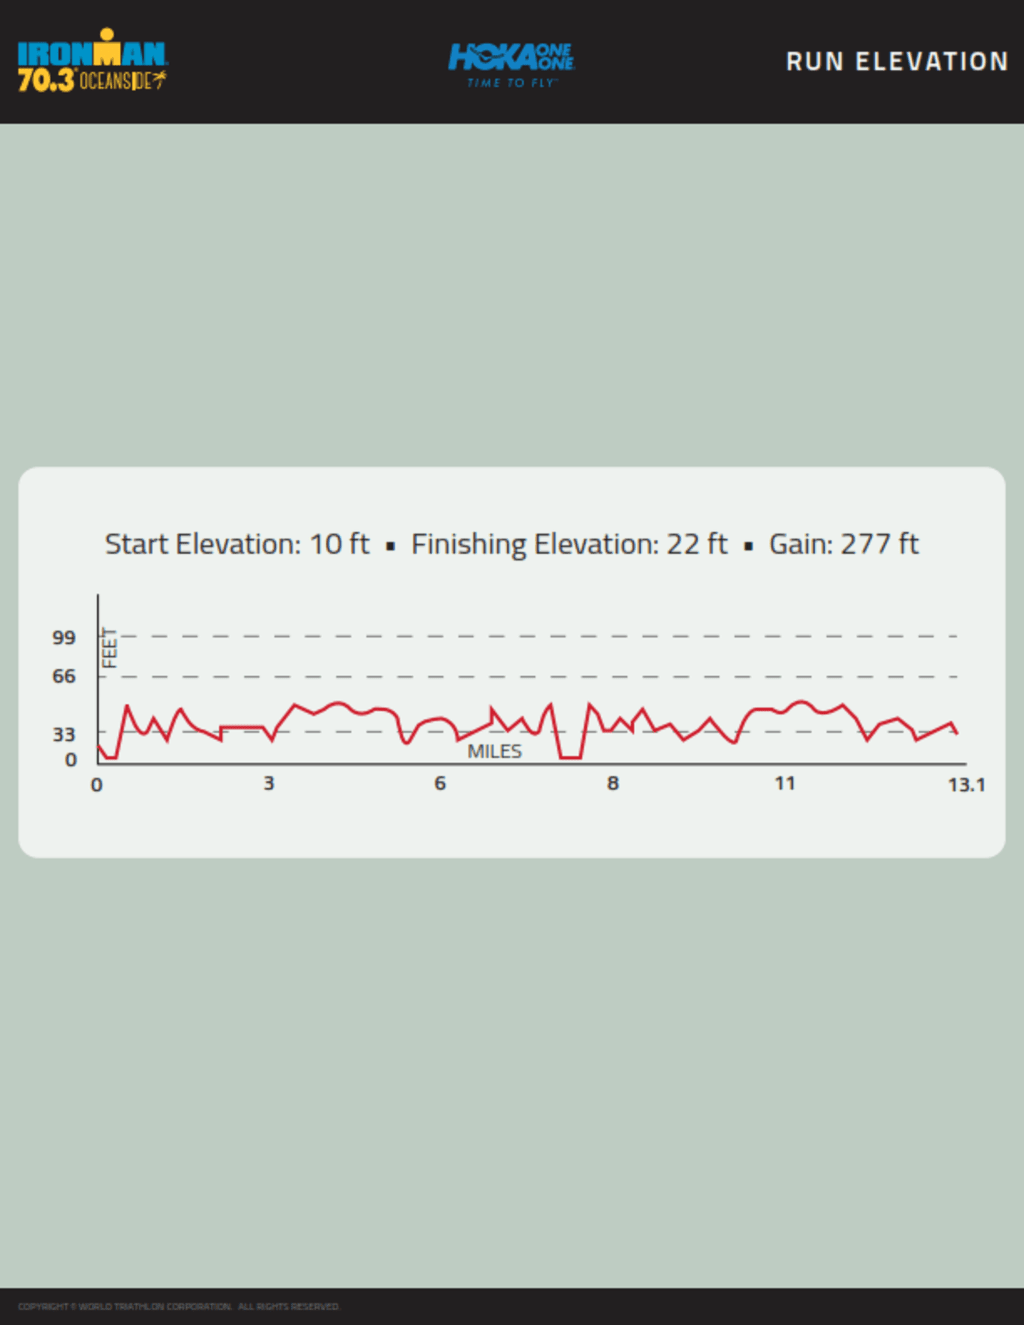 ironman-course-map-703-oceanside-run-elevation-2018-web-1_001.png